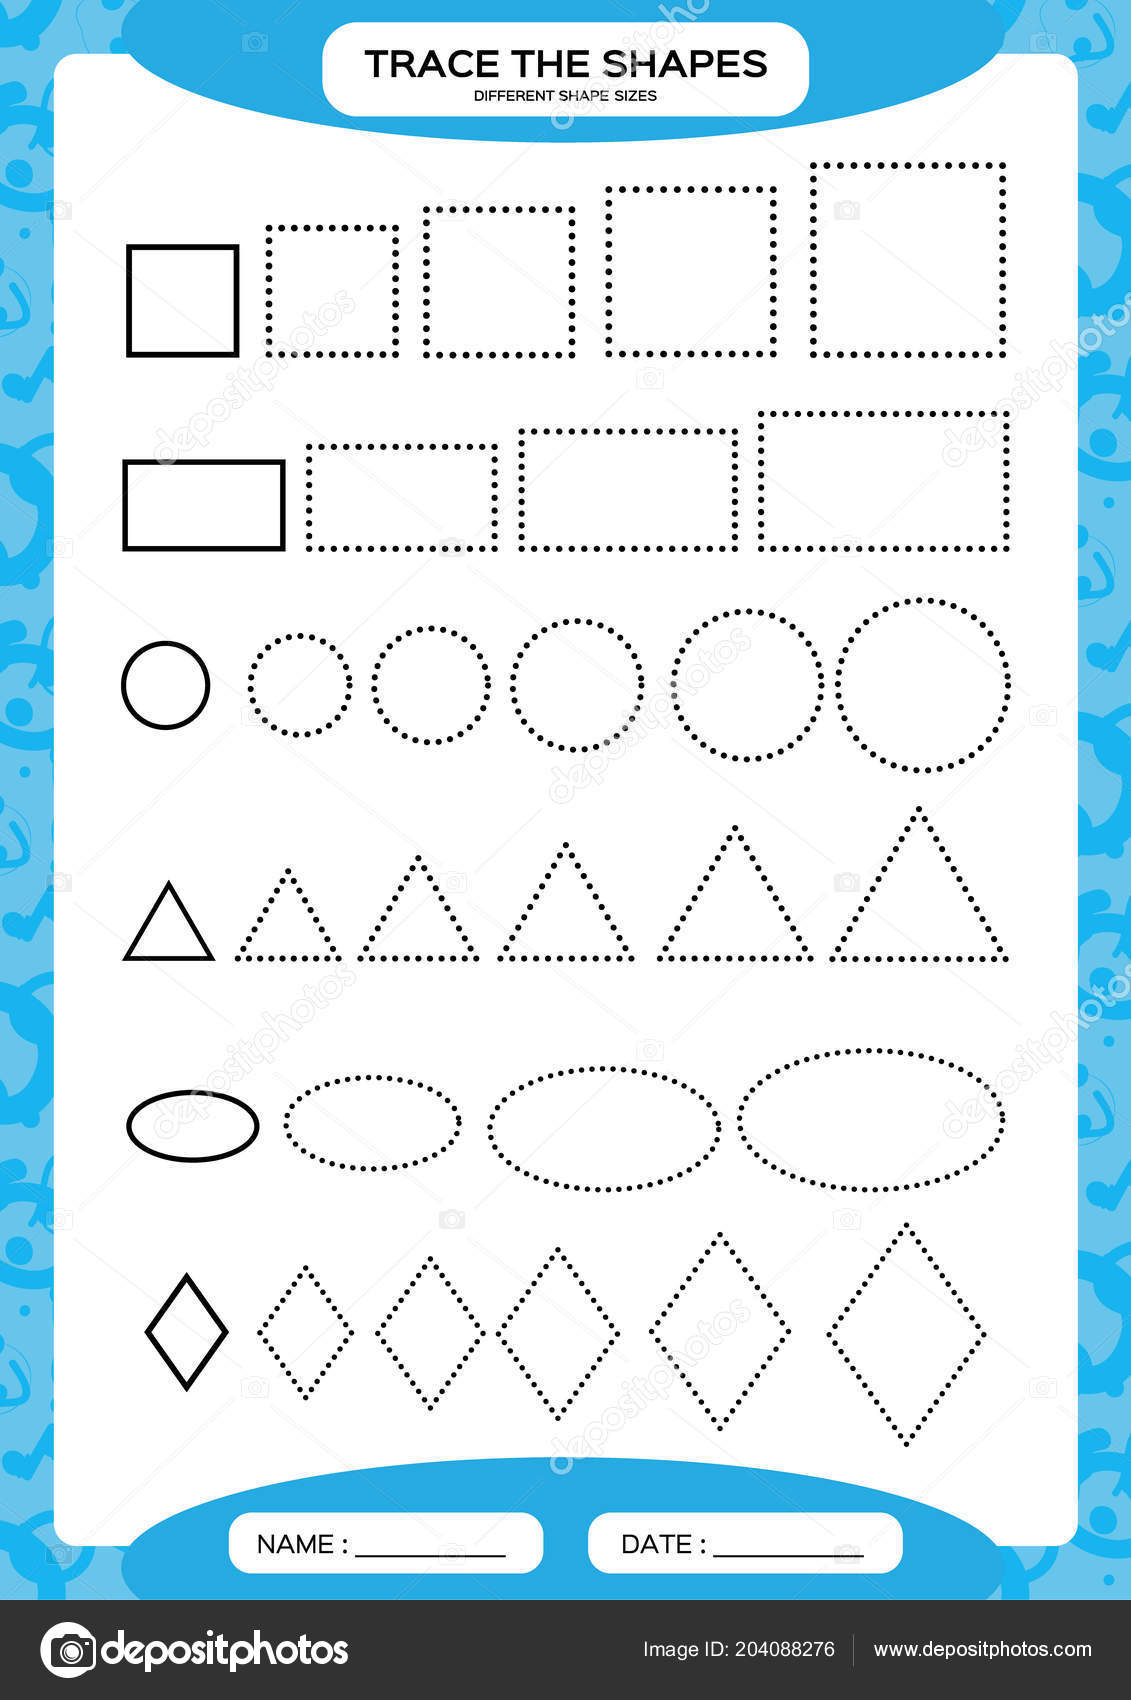 Different Shape Sizes Learning Basic Shapes Trace Draw Worksheet Preschool